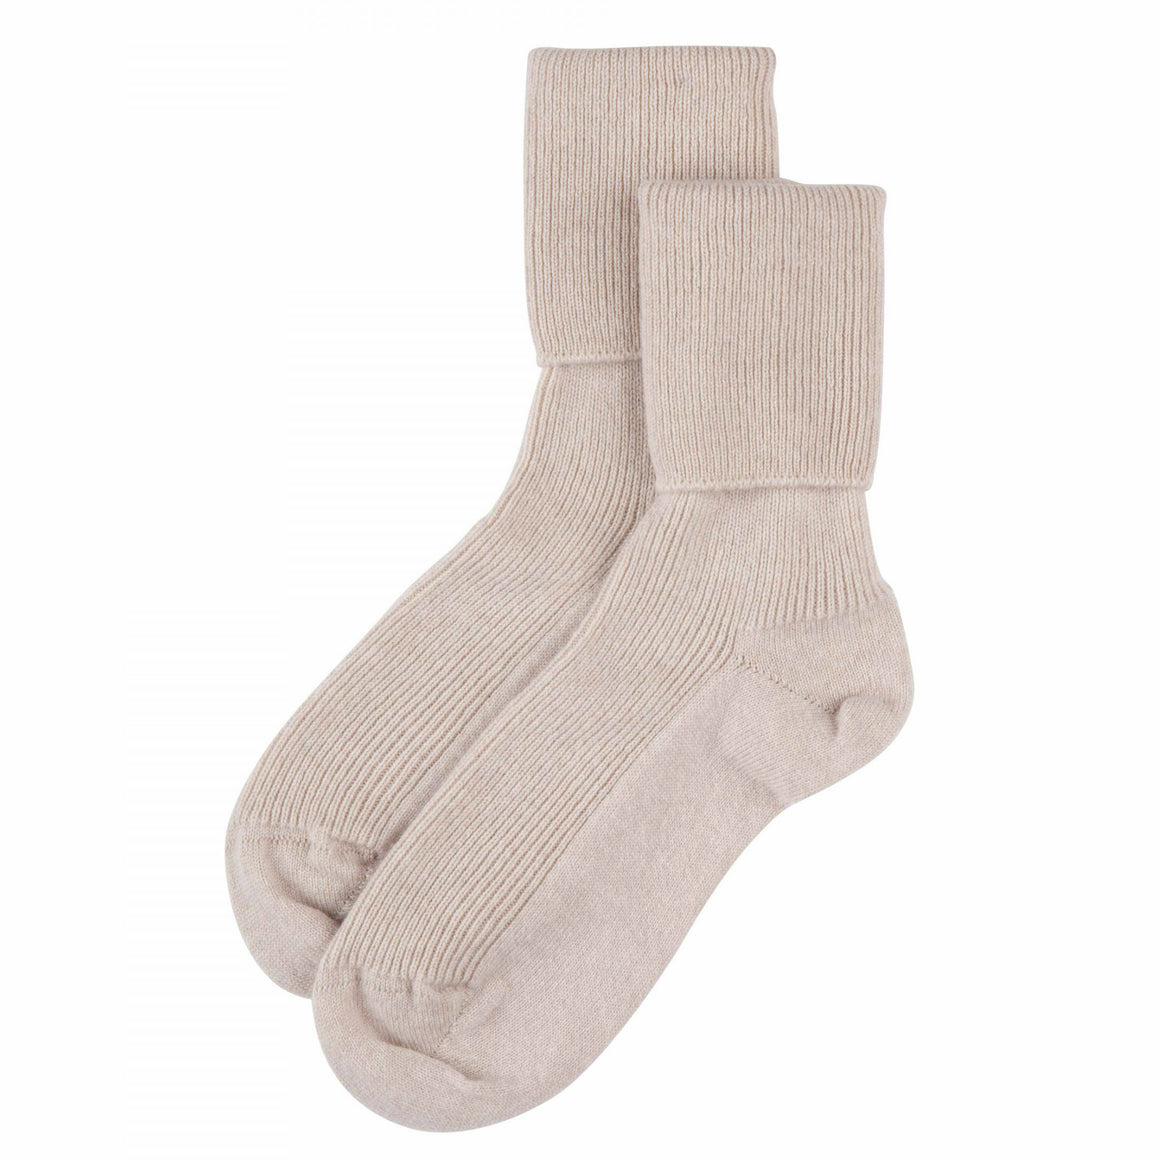 Ladies White Cashmere Socks | Bed Sock | buy now at The Cashmere Choice London